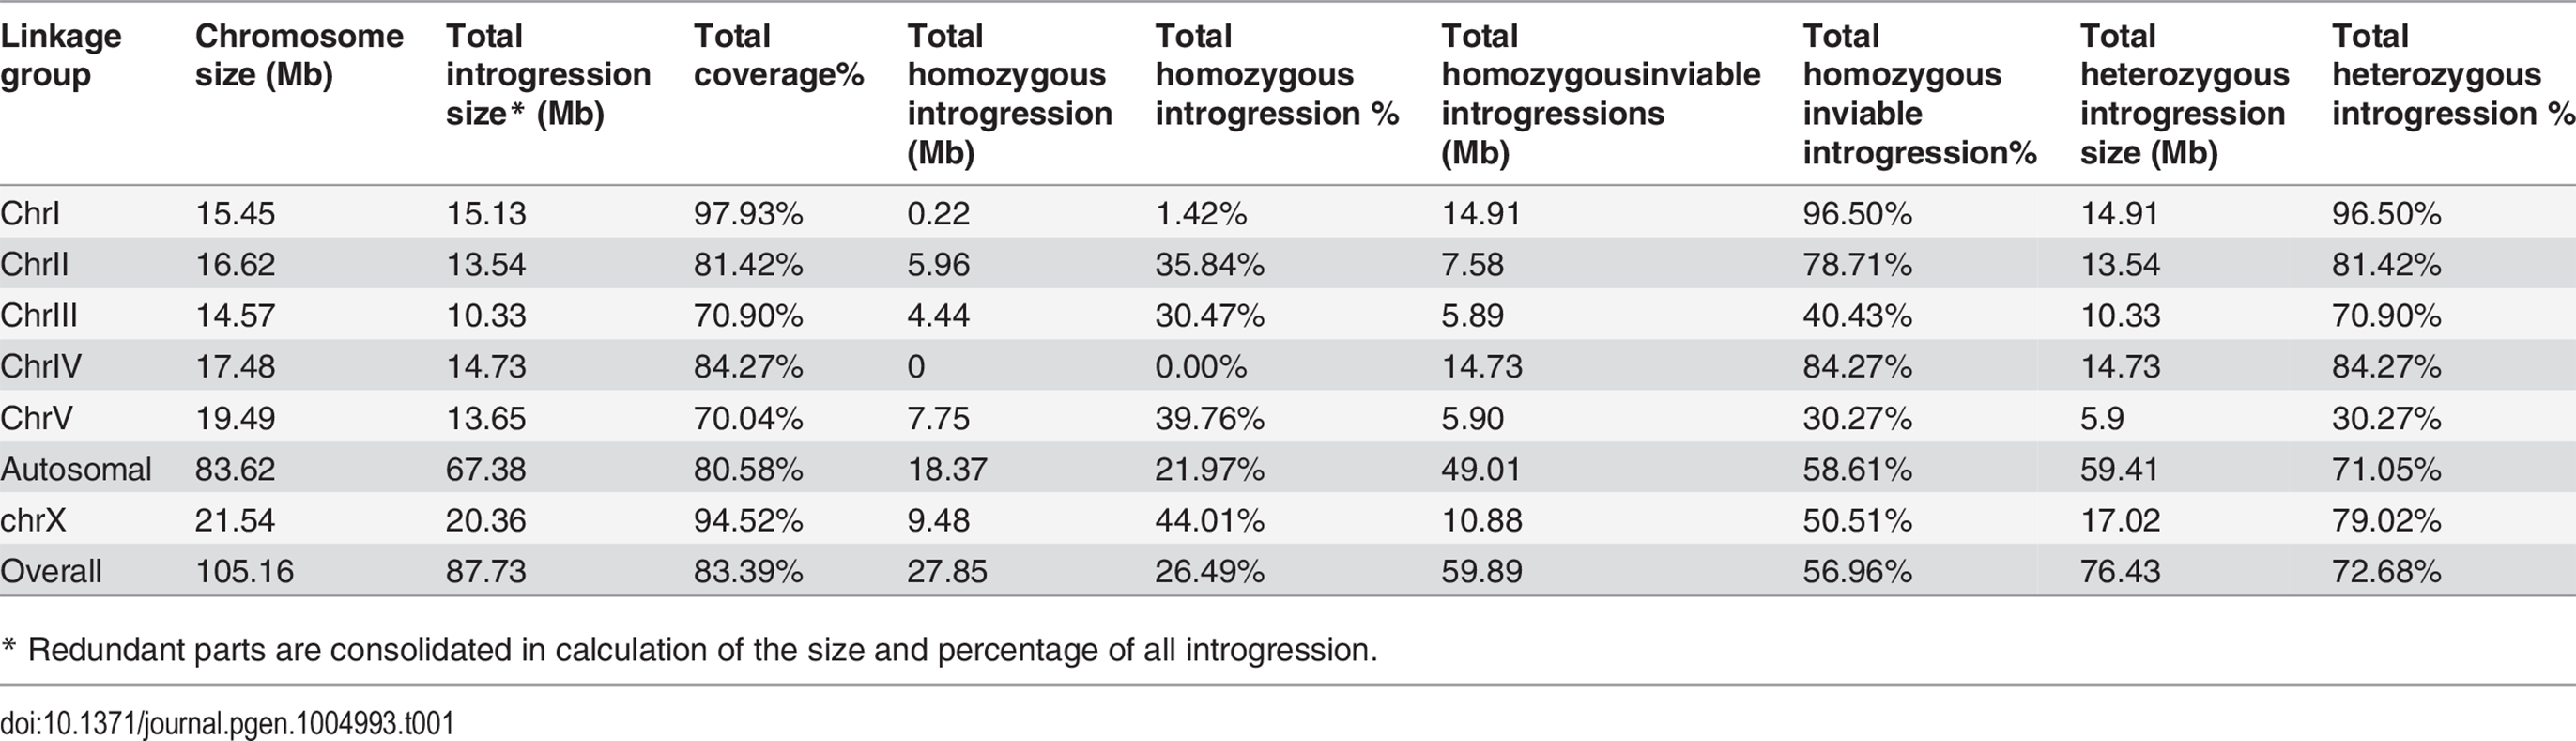 "Coverage statistics for introgressions along with its homozygous viability based on the ""cb4"" assembly of <i>C. briggsae</i> genome."